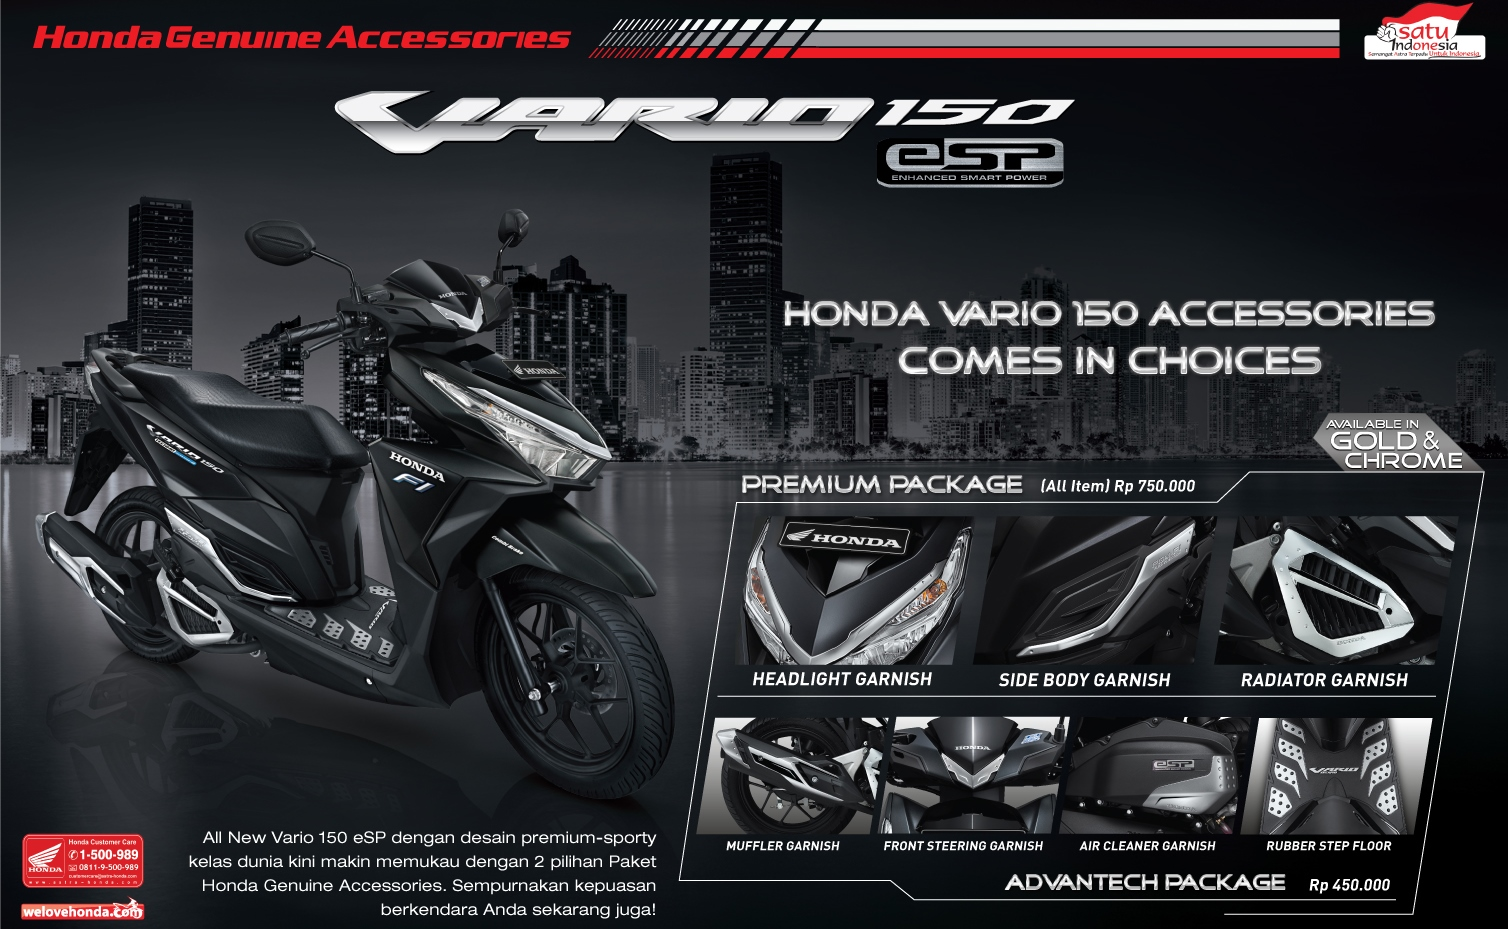 Anisa Counter Sales Dealer Nagamas Motor Klaten All New Cbr 150r Racing Red Jepara Dibekali Aksesori Cantik Honda Vario 150 Exclusive Chrome Gold Jadi Modis Tanpa Modifikasi